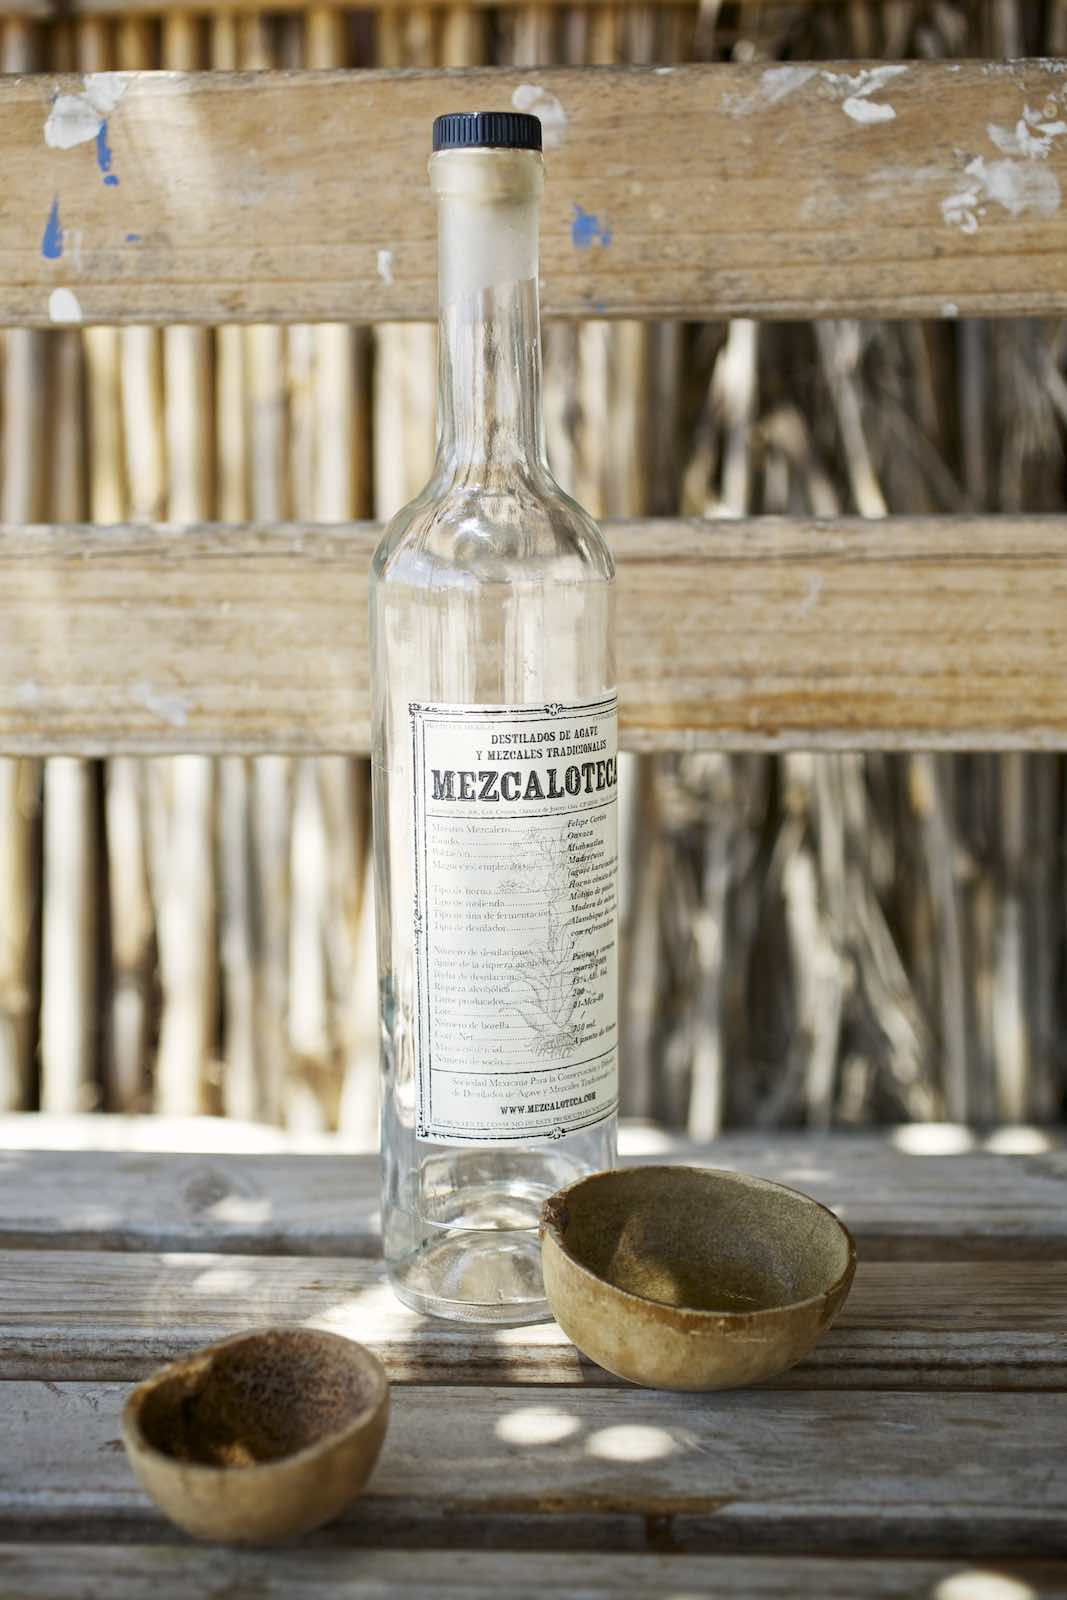 Jody Horton Photography - Bottled mezcal and jícaras.